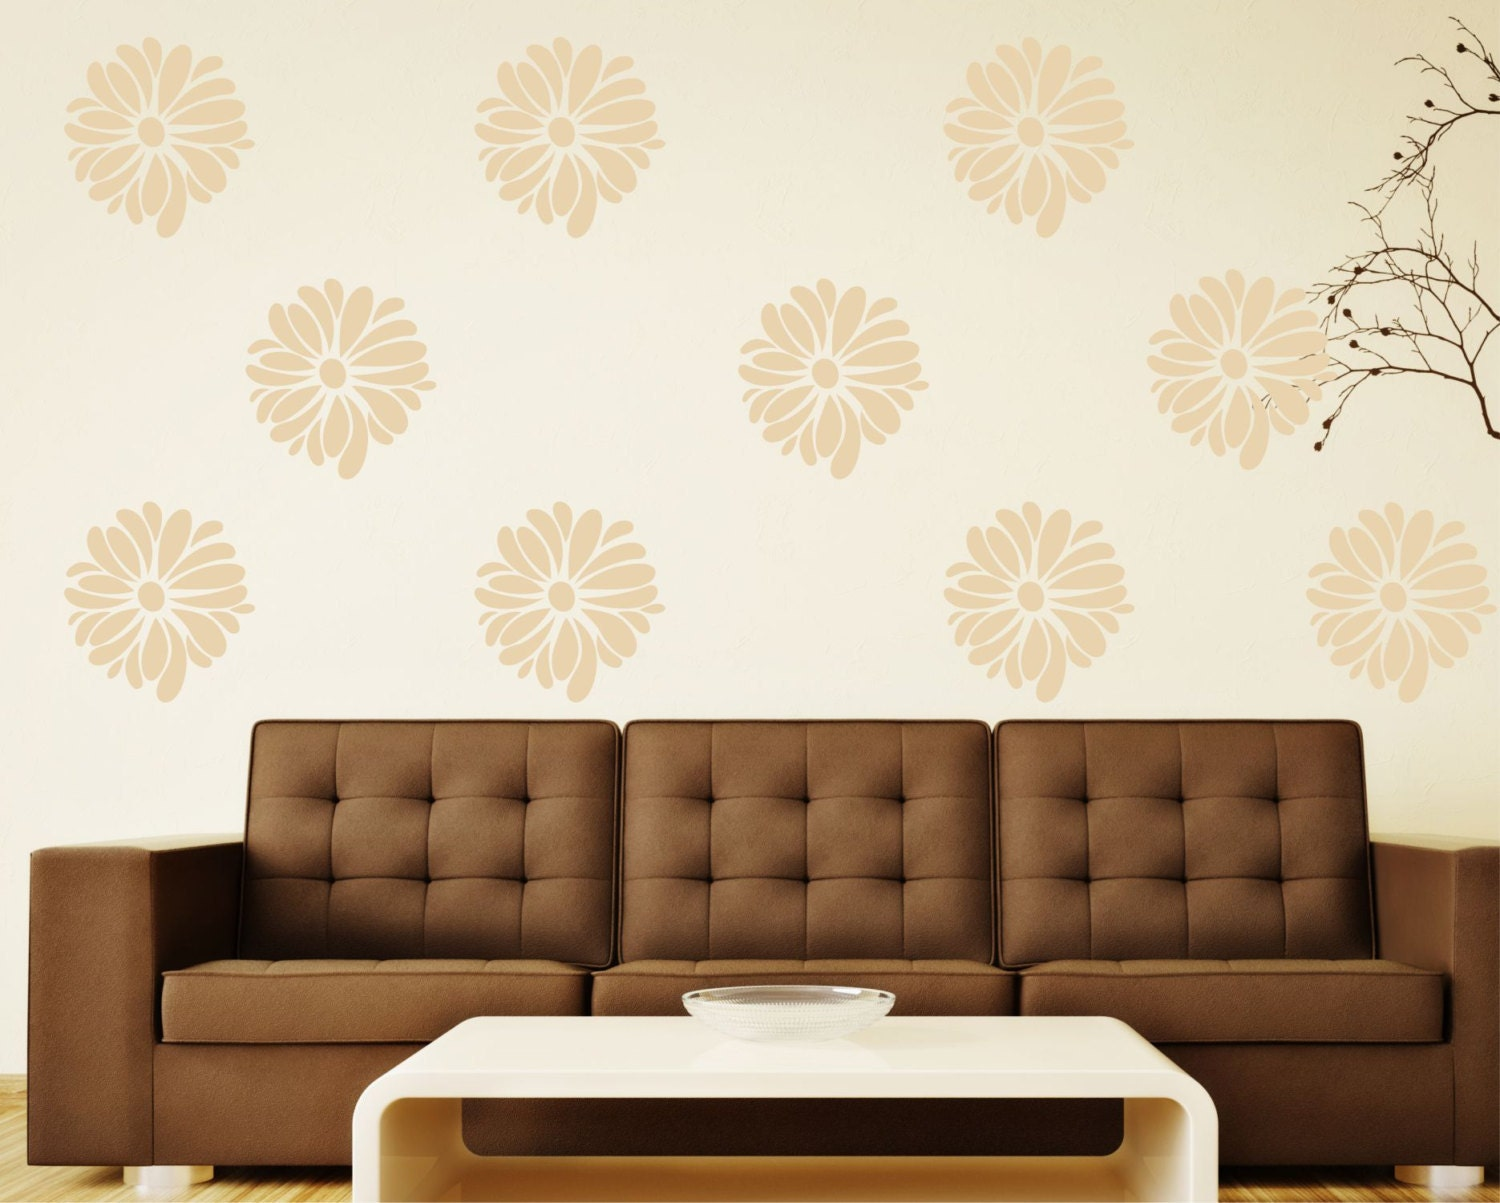 flower wall decals small decal pattern flower great for